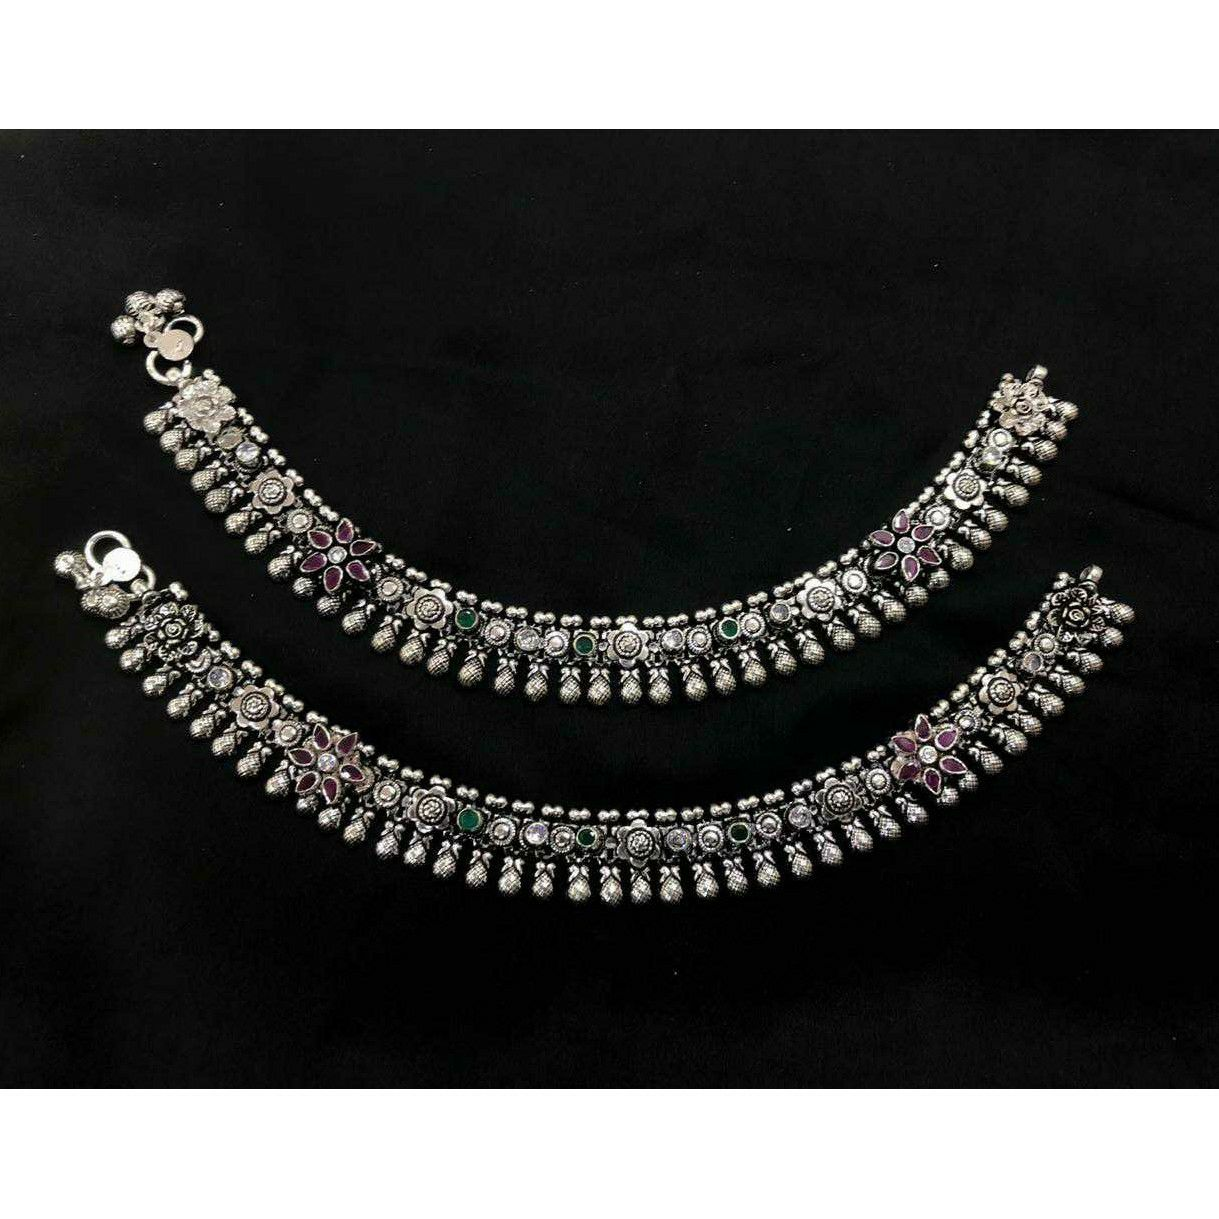 92.5 Sterling Silver Beautiful Handwork Oxodize Anklet(Payal) Ms-3863